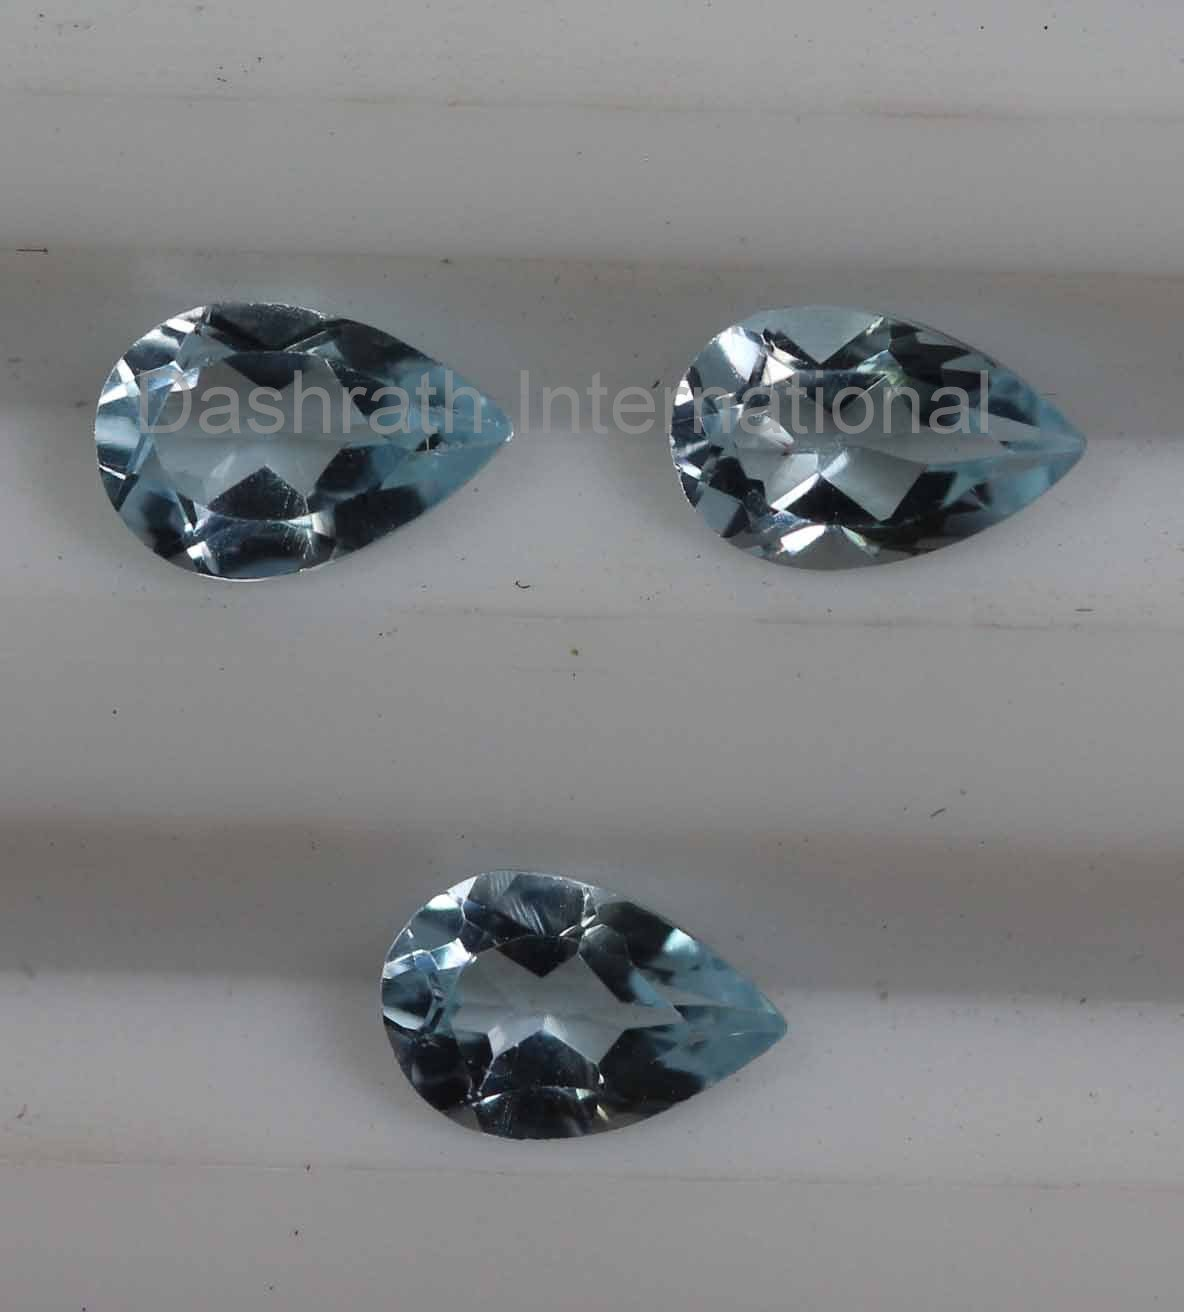 7x10mm Natural Sky Blue Topaz Faceted Cut Pear 25 Pieces Lot  Top Quality Loose Gemstone